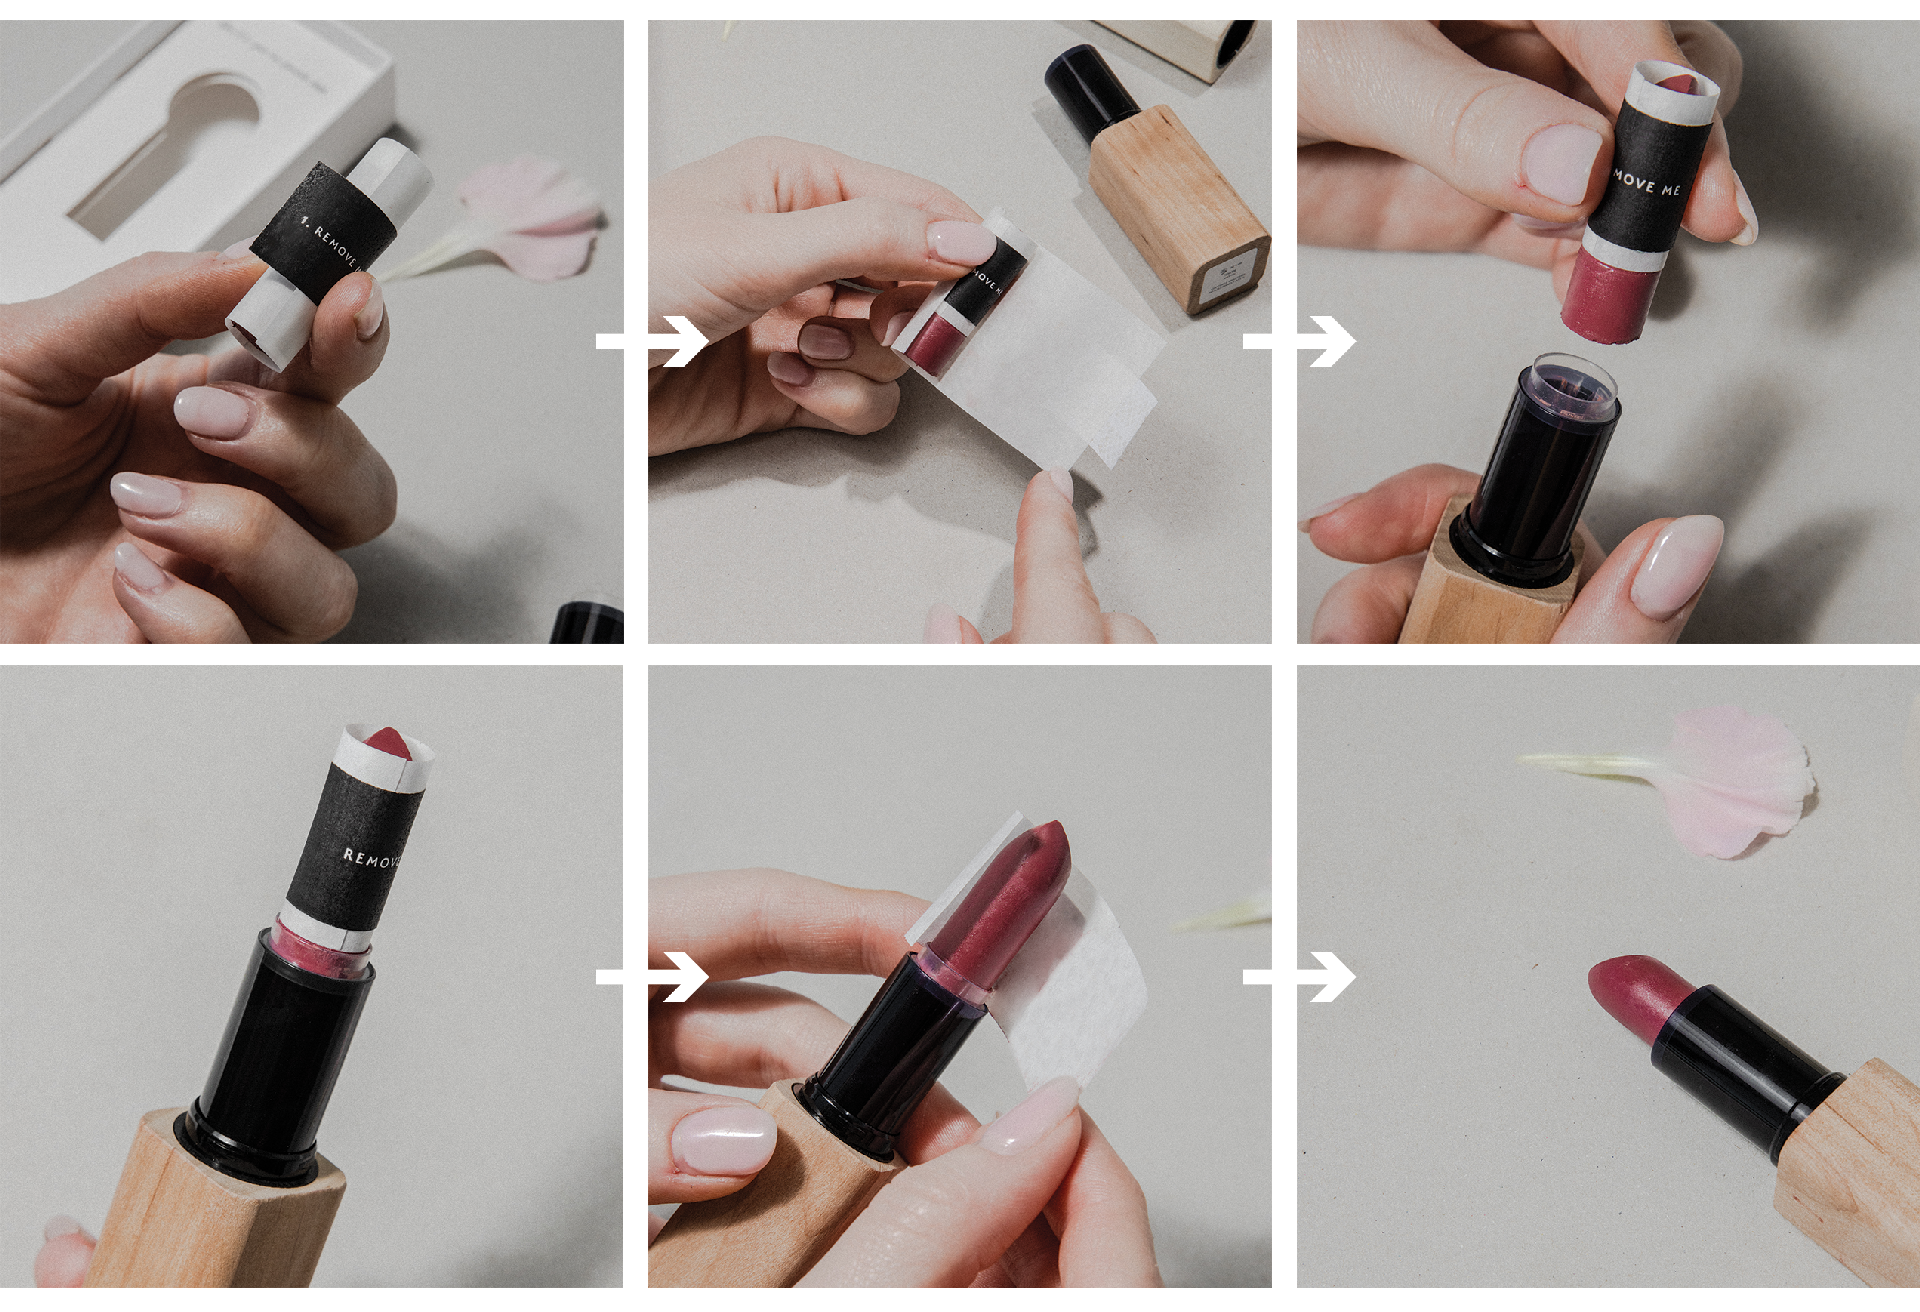 How to use HAVU lipstick refill